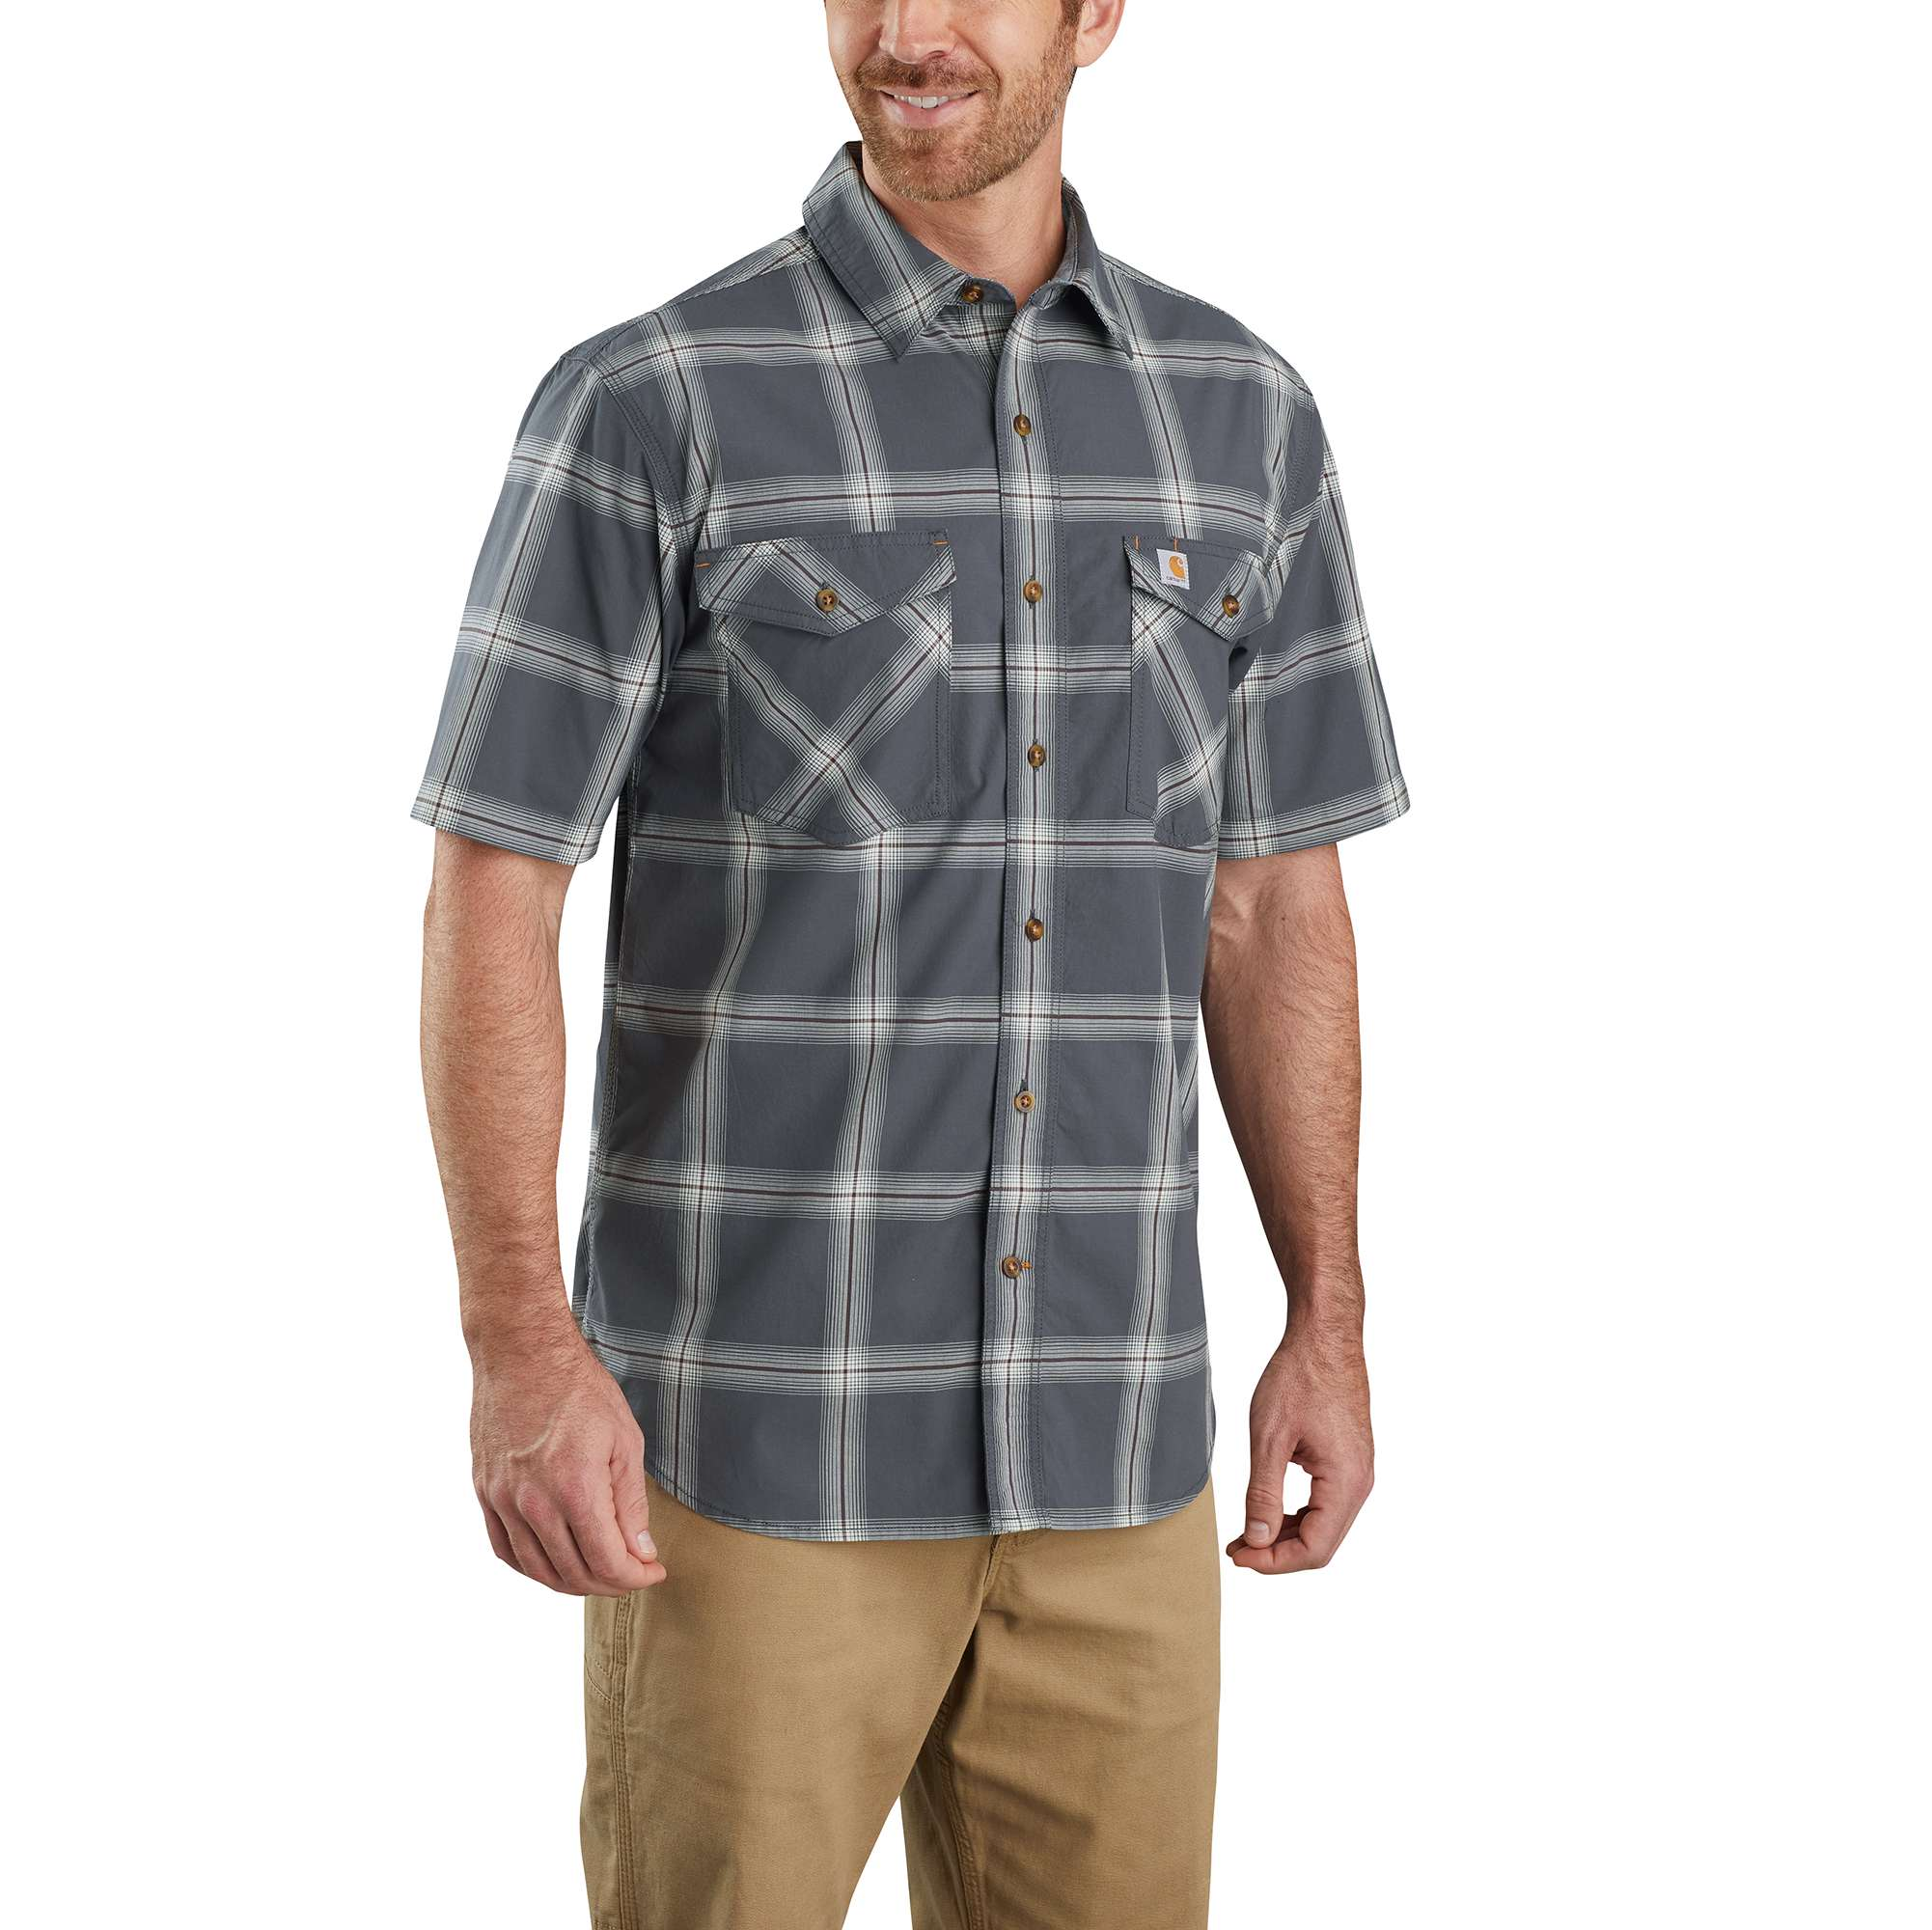 Carhartt Rugged Flex Relaxed Fit Lightweight Short-Sleeve Button-Front Plaid Shirt